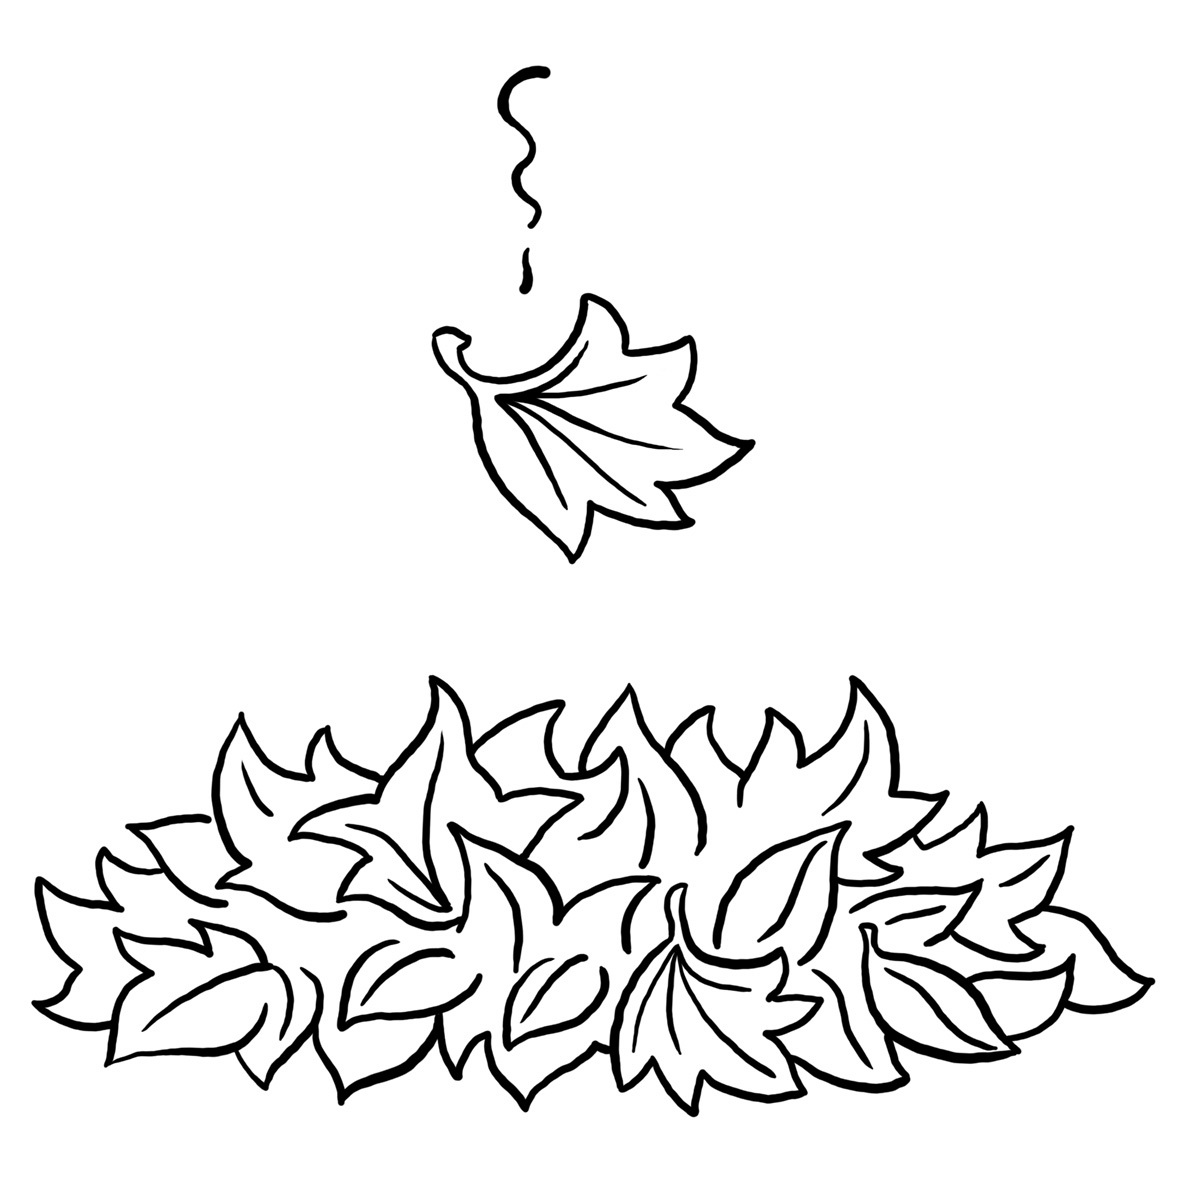 Co coloring page for leaves - Pot Leaf Coloring Pages Clipart Best